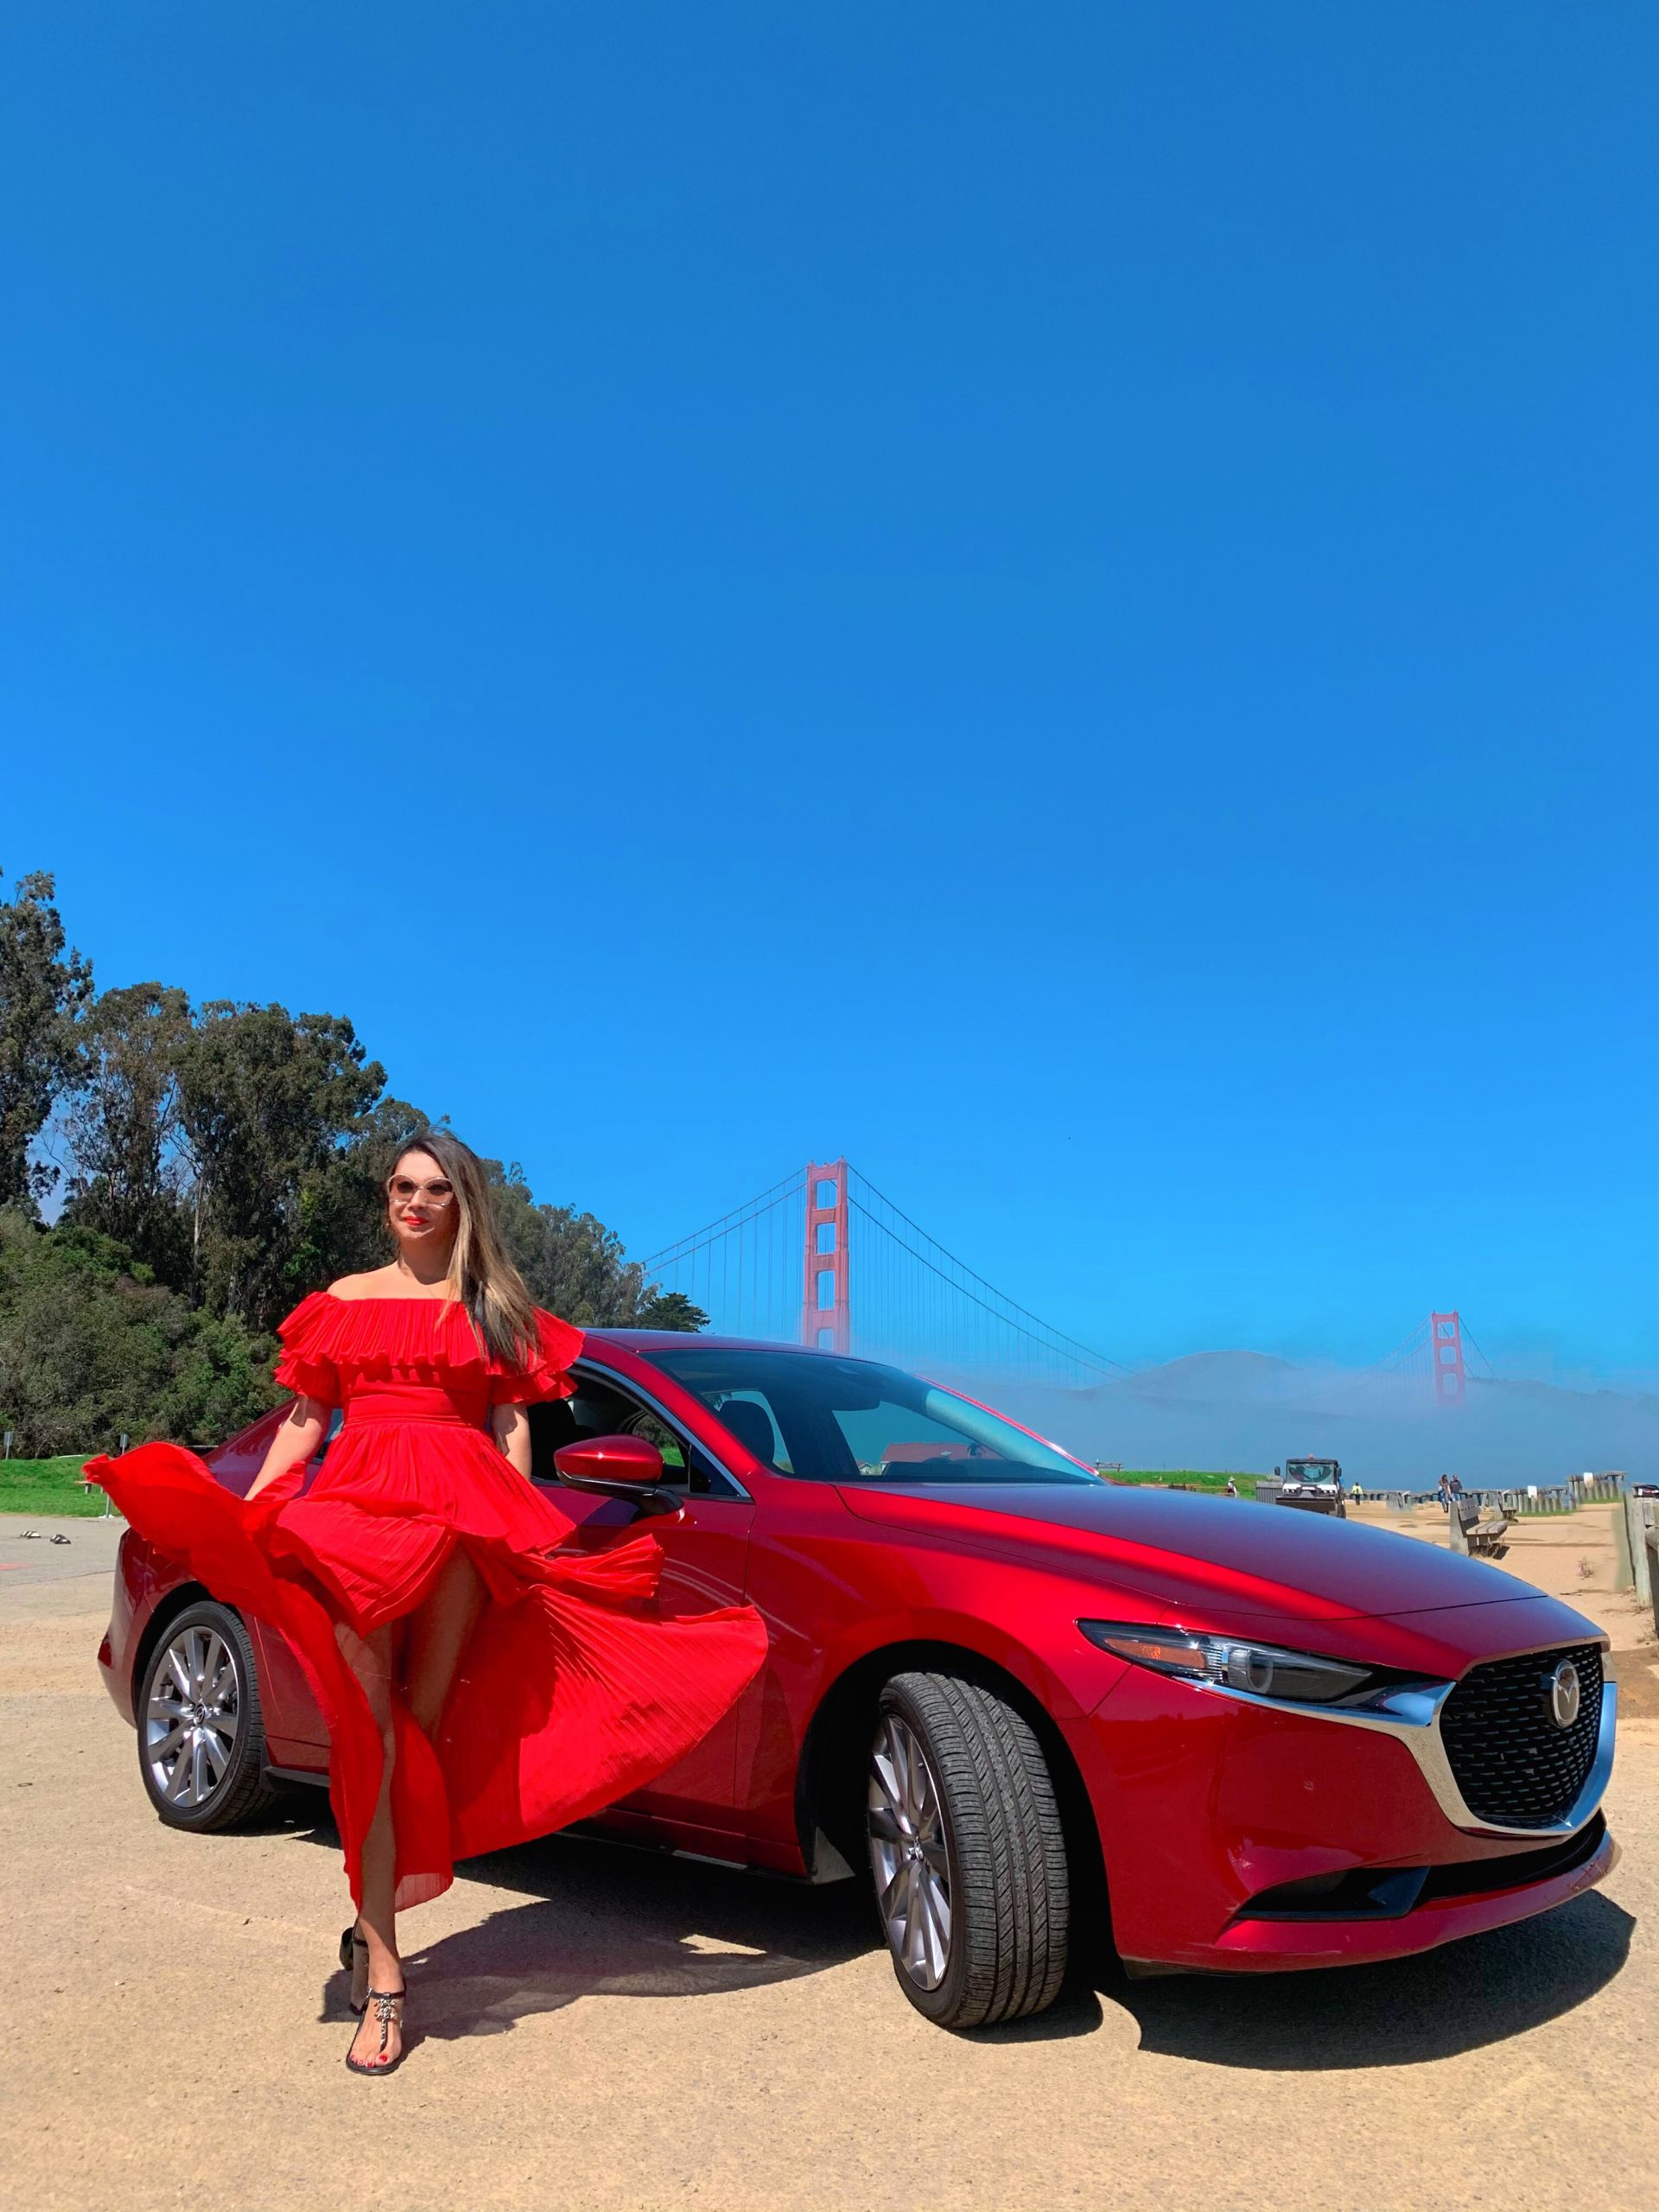 Mazda3 Sedan, best view of San Francisco, Best Instagram spots in San Francisco, Golden Gate Bridge, Marina SF, Jennifer Worman, Red Car in SF